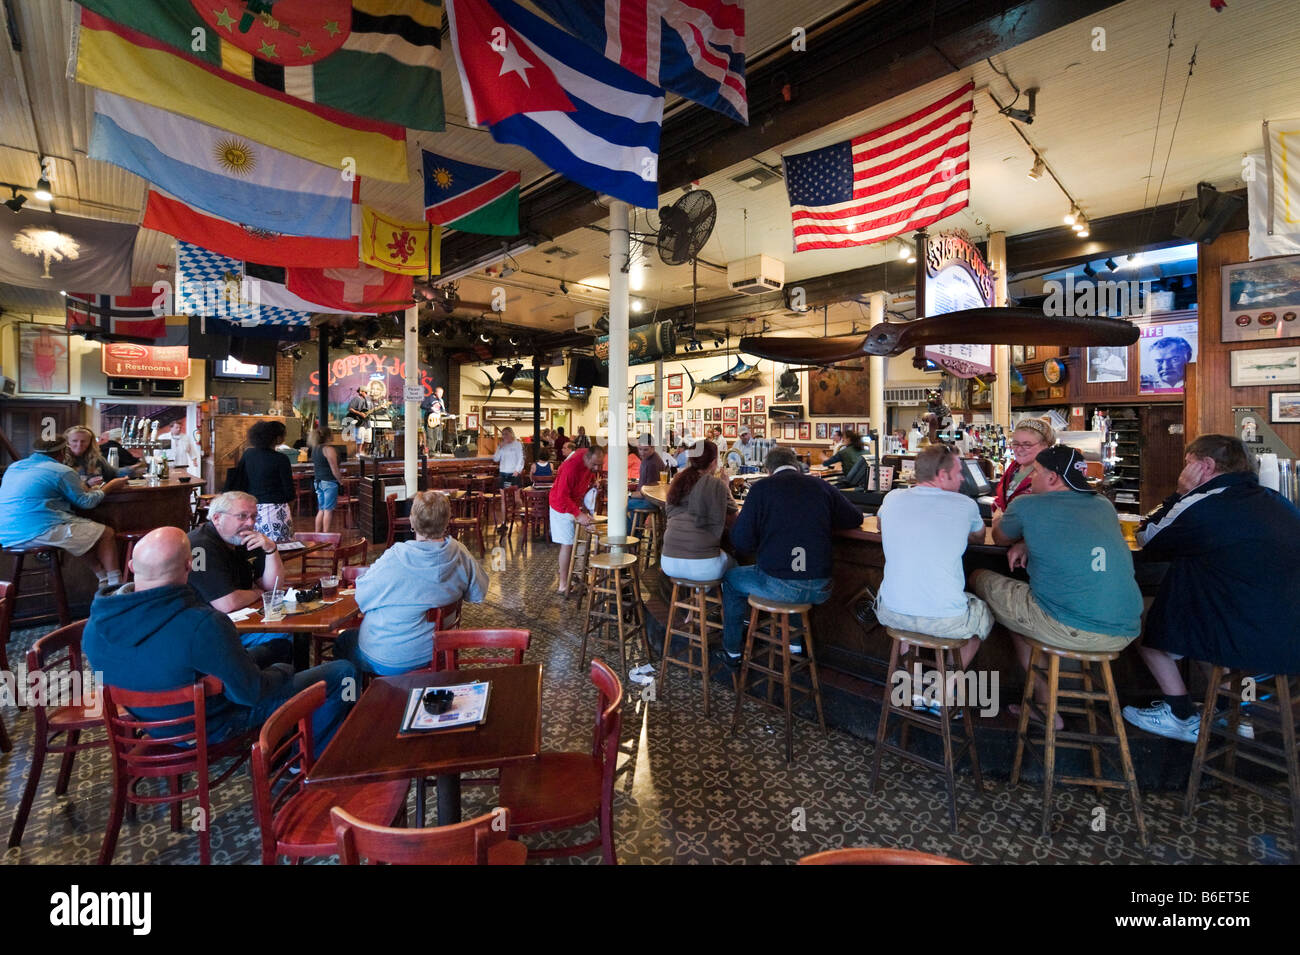 Live music in Sloppy Joe's Saloon, Duval Street in the old town, Key West, Florida Keys, USA - Stock Image